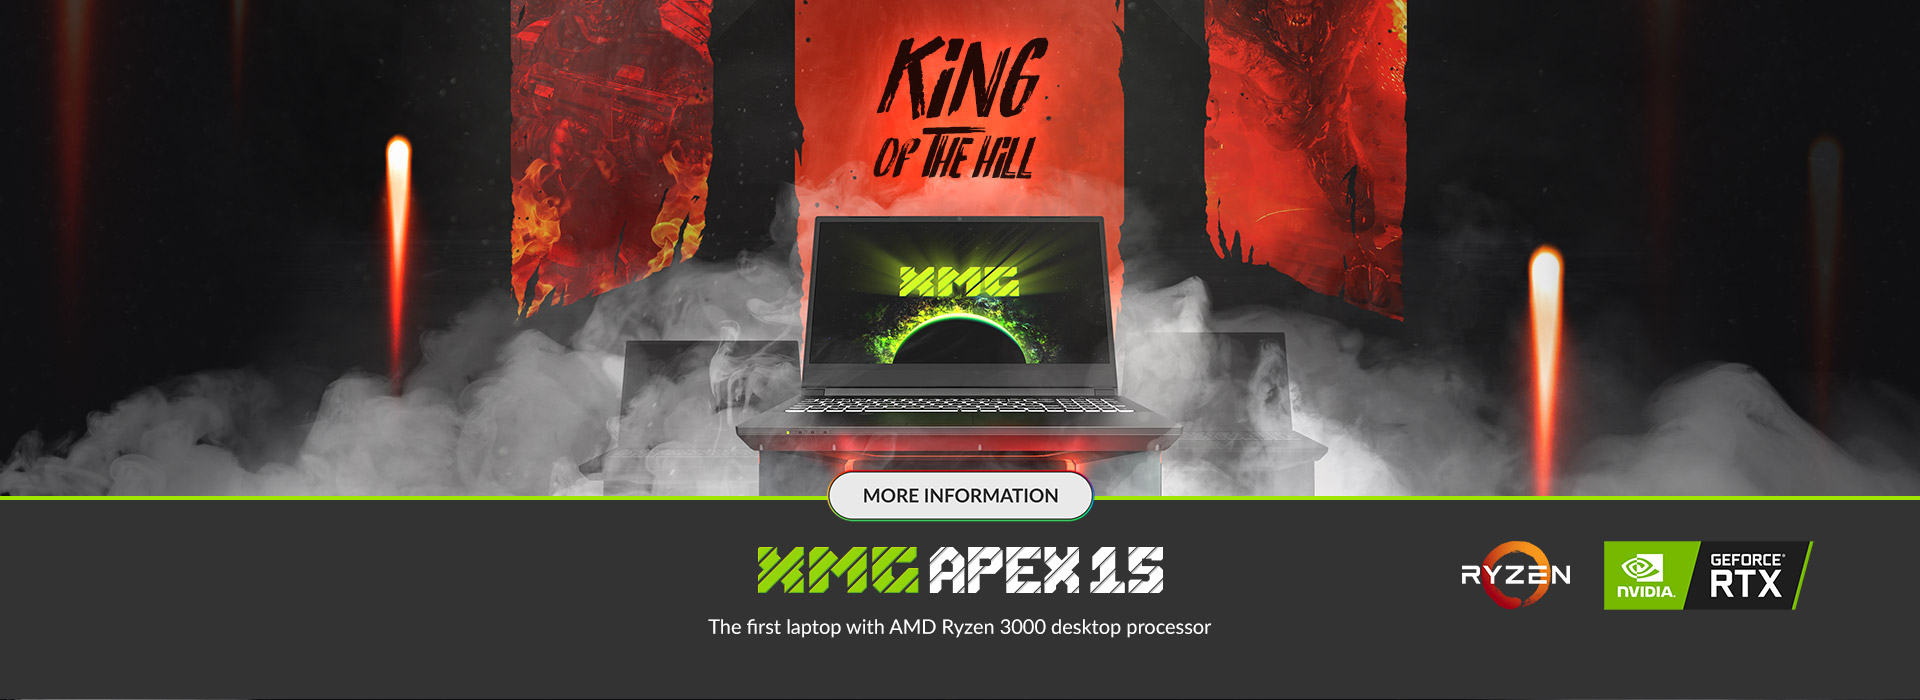 XMG APEX 15 - KING OF THE HILL